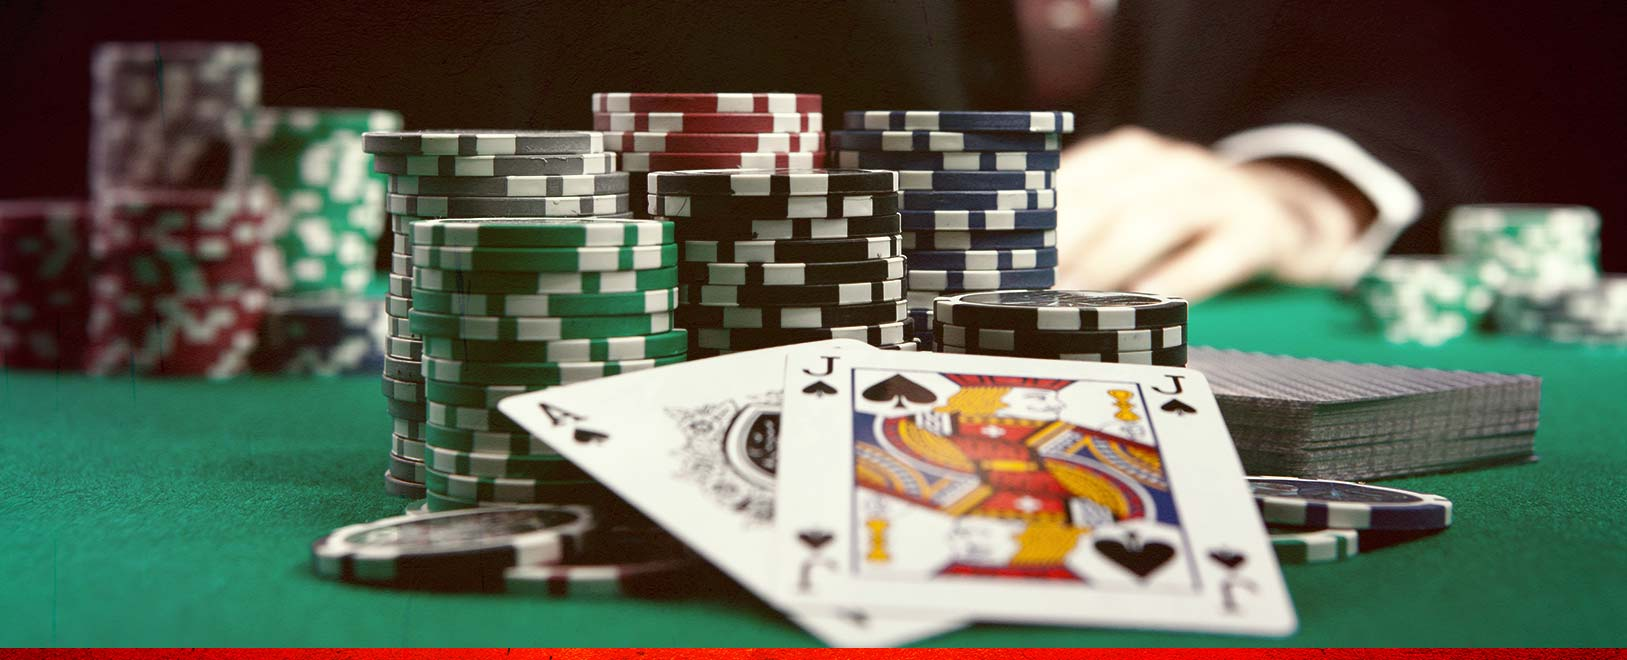 Bluffing in Real Money Online Poker